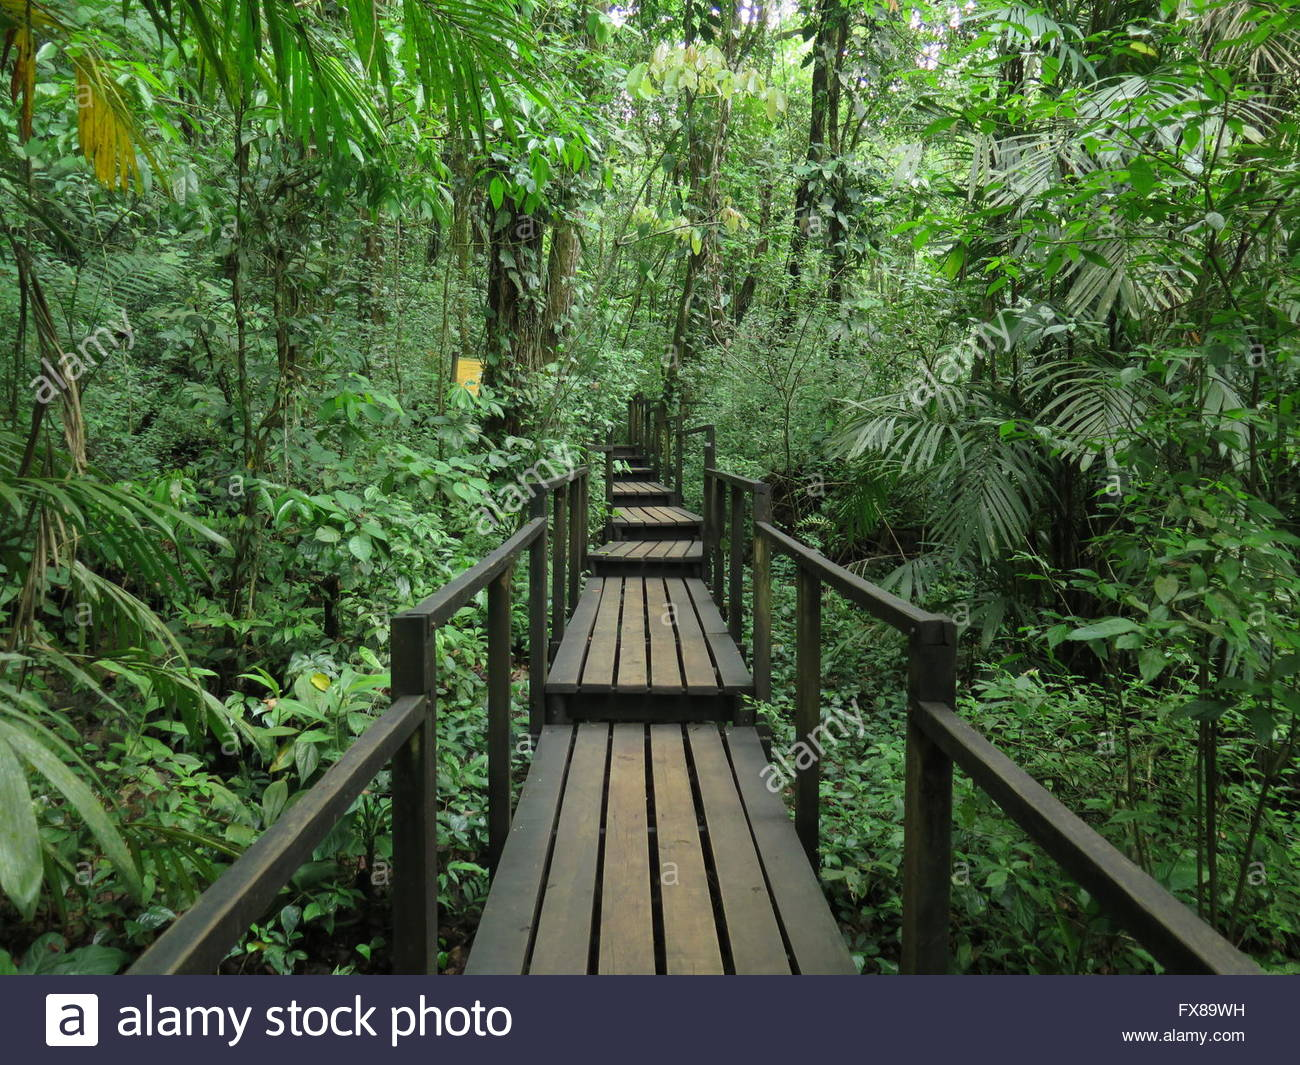 wooden bridge in the jungle stock photo 102216285 alamy. Black Bedroom Furniture Sets. Home Design Ideas